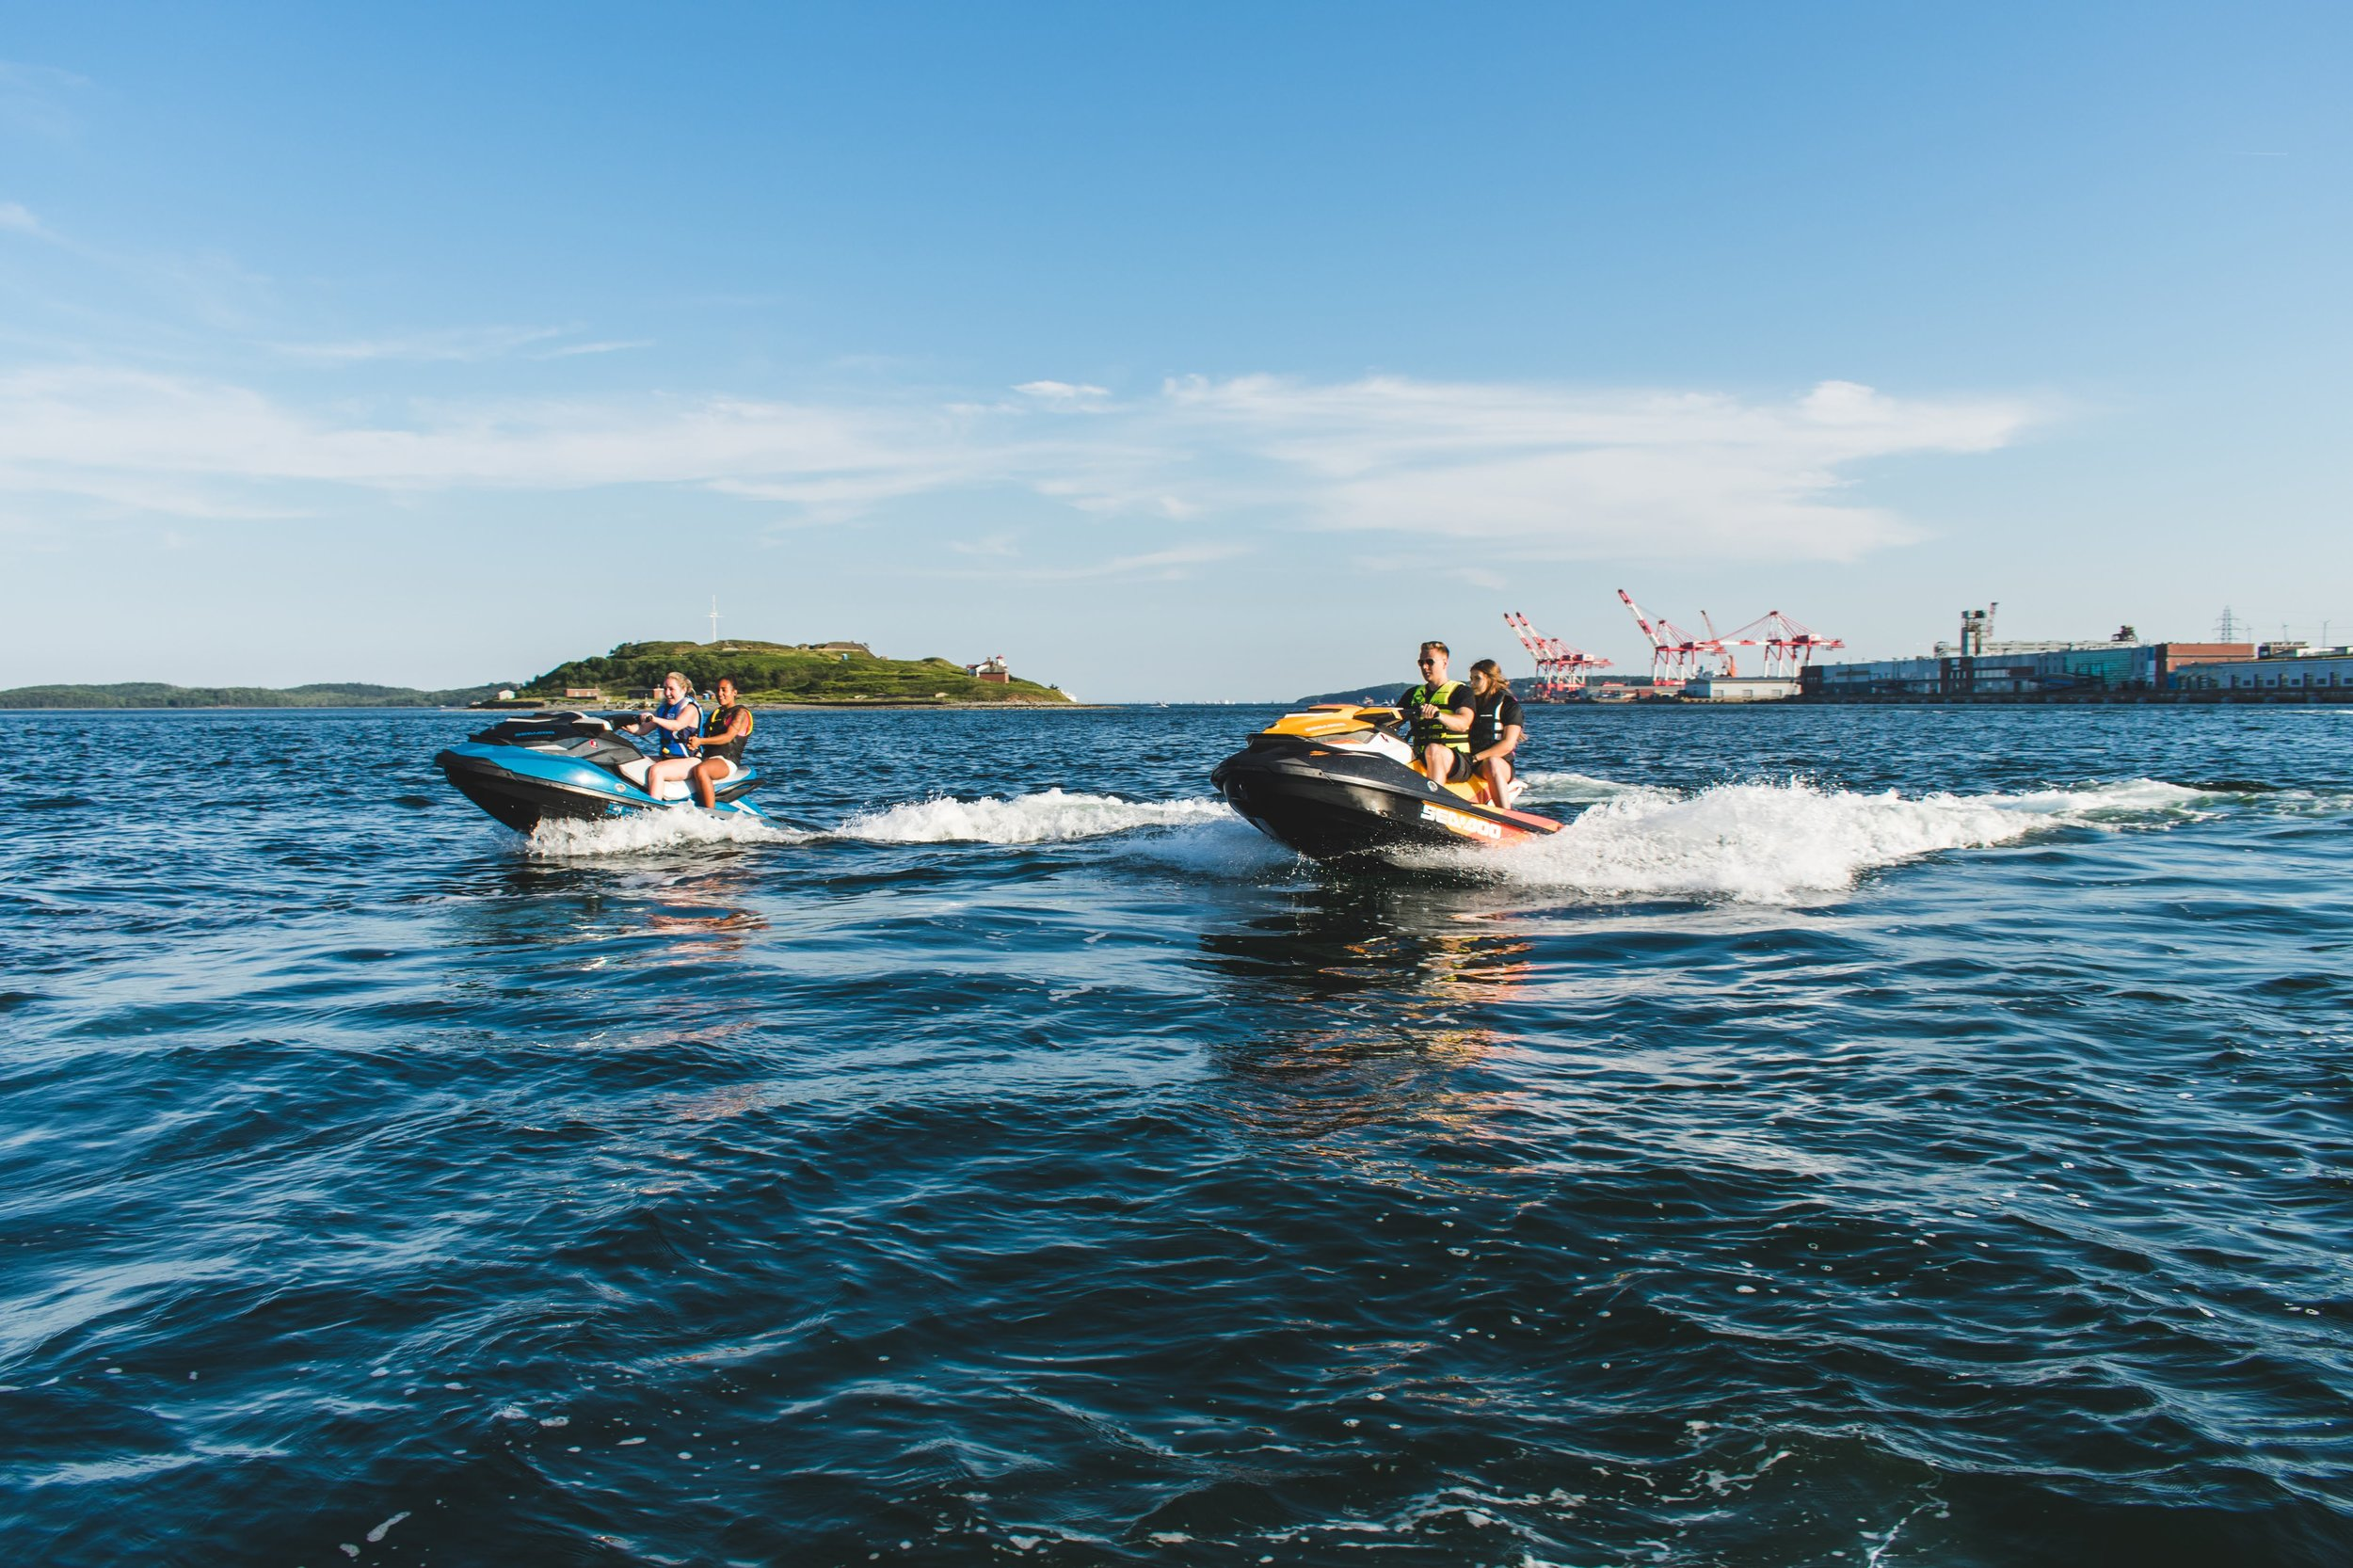 Looking for more of an experience? Take the Harbour Tour! - Tour around Georges Island, McNabs Island, the Halifax Waterfront and the Bedford basin with your family & friends, and learn about Halifax along the way!